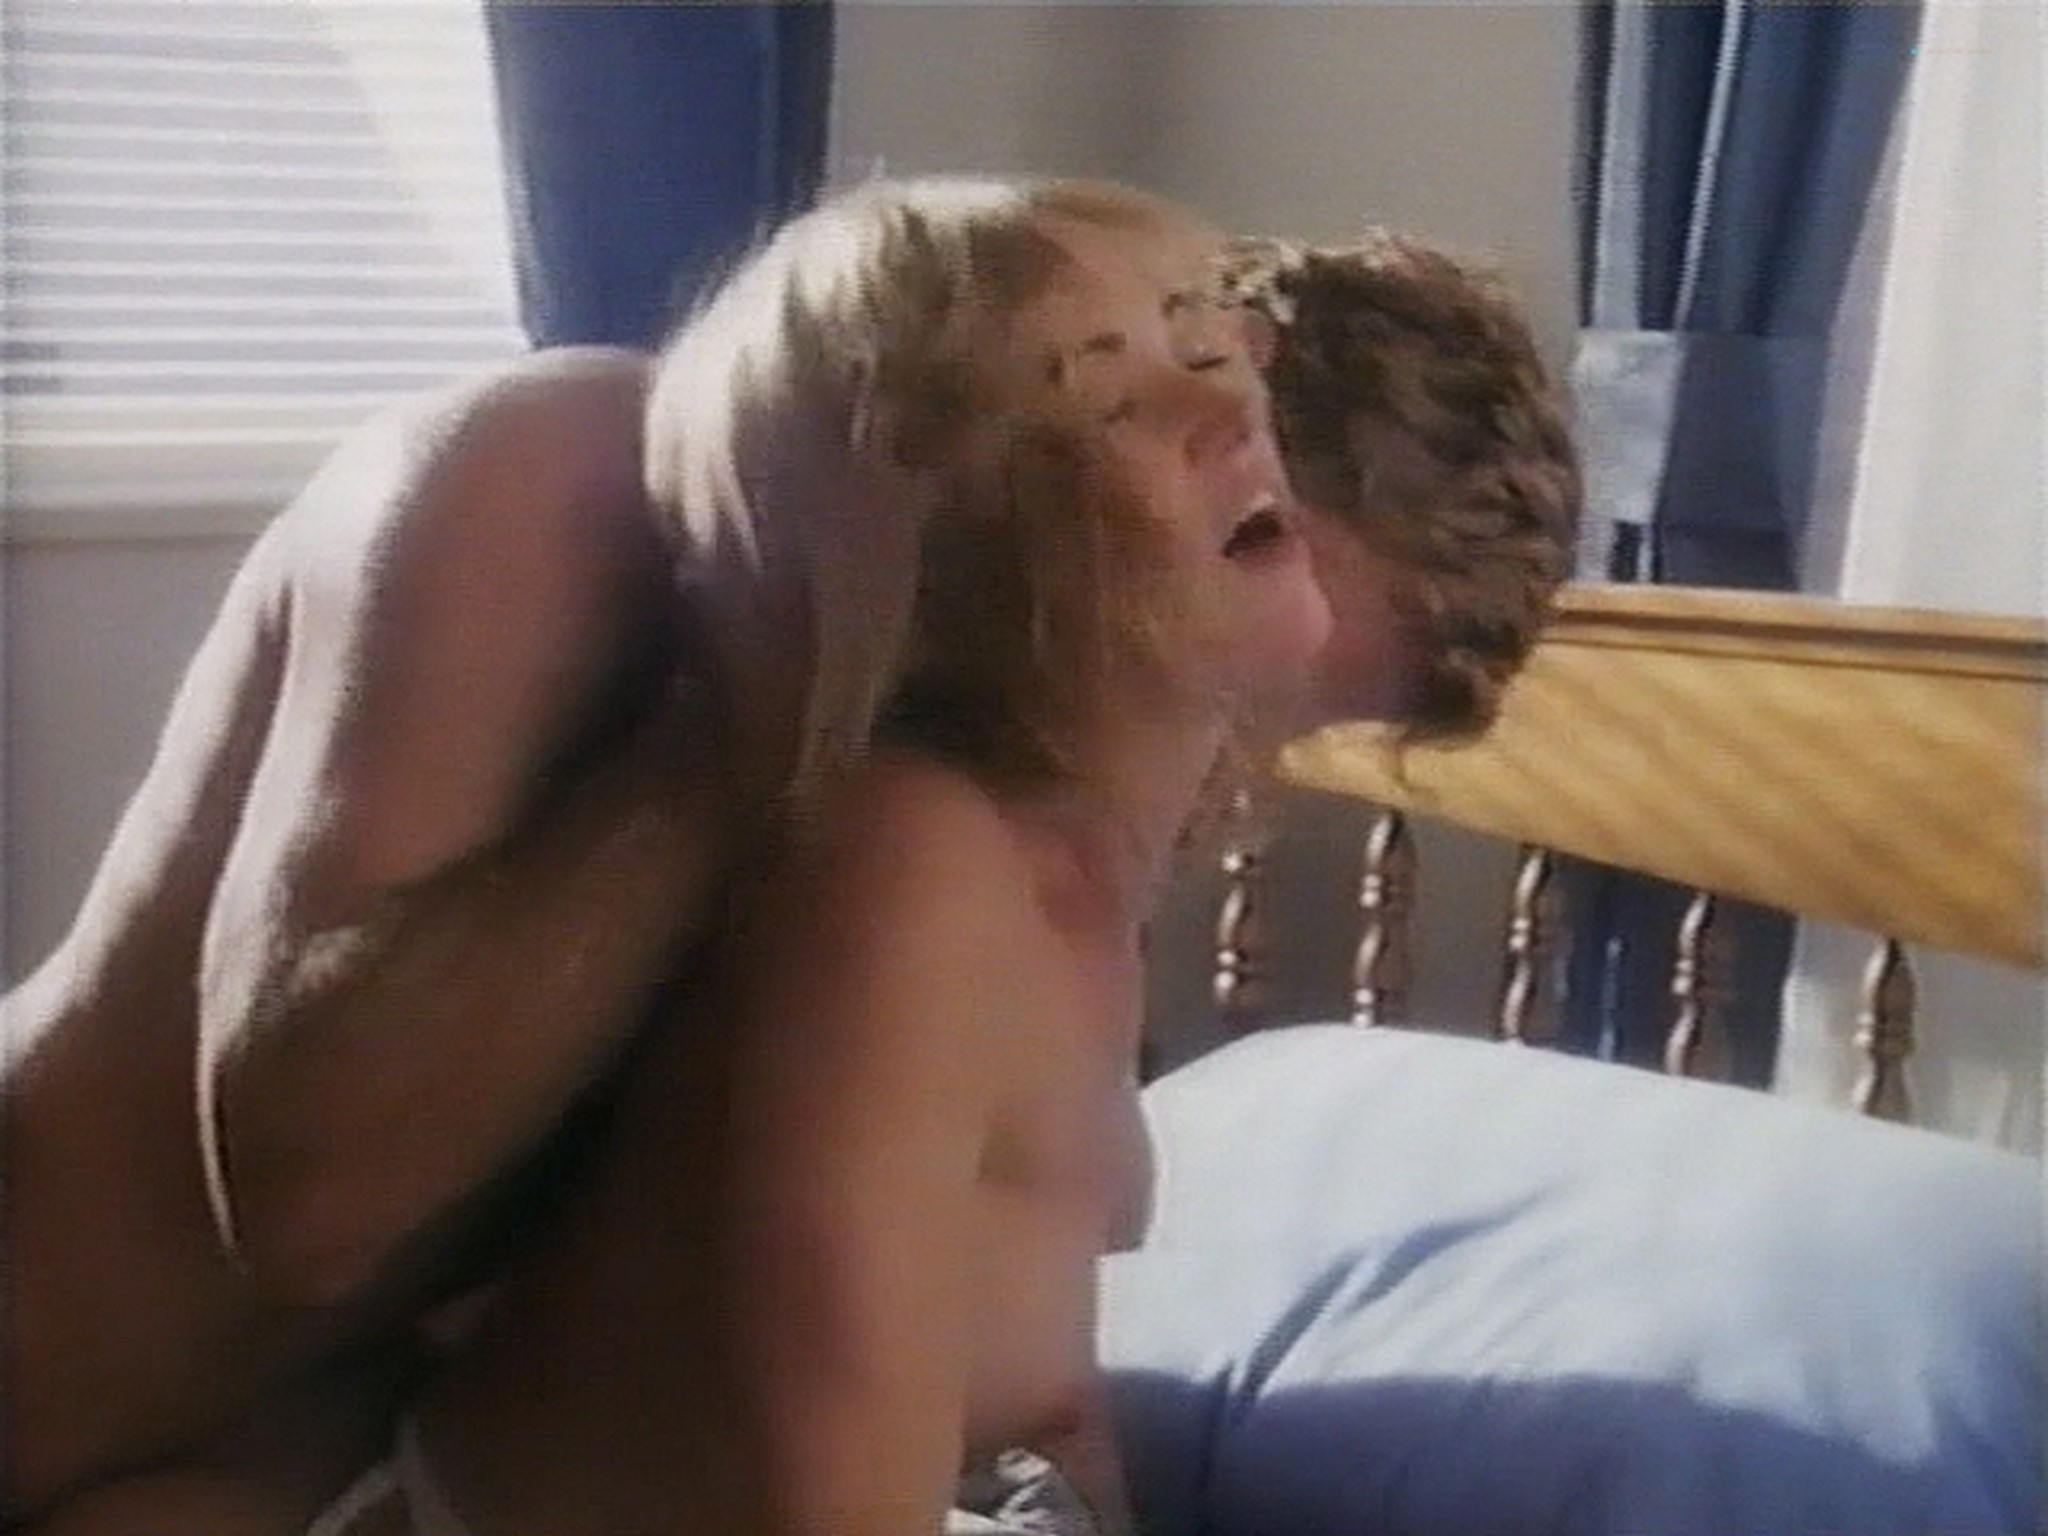 Shannon Whirry nude Elizabeth Sandifer and Shannon McLeod all nude and sex in - Animal Instincts II (1994) (15)